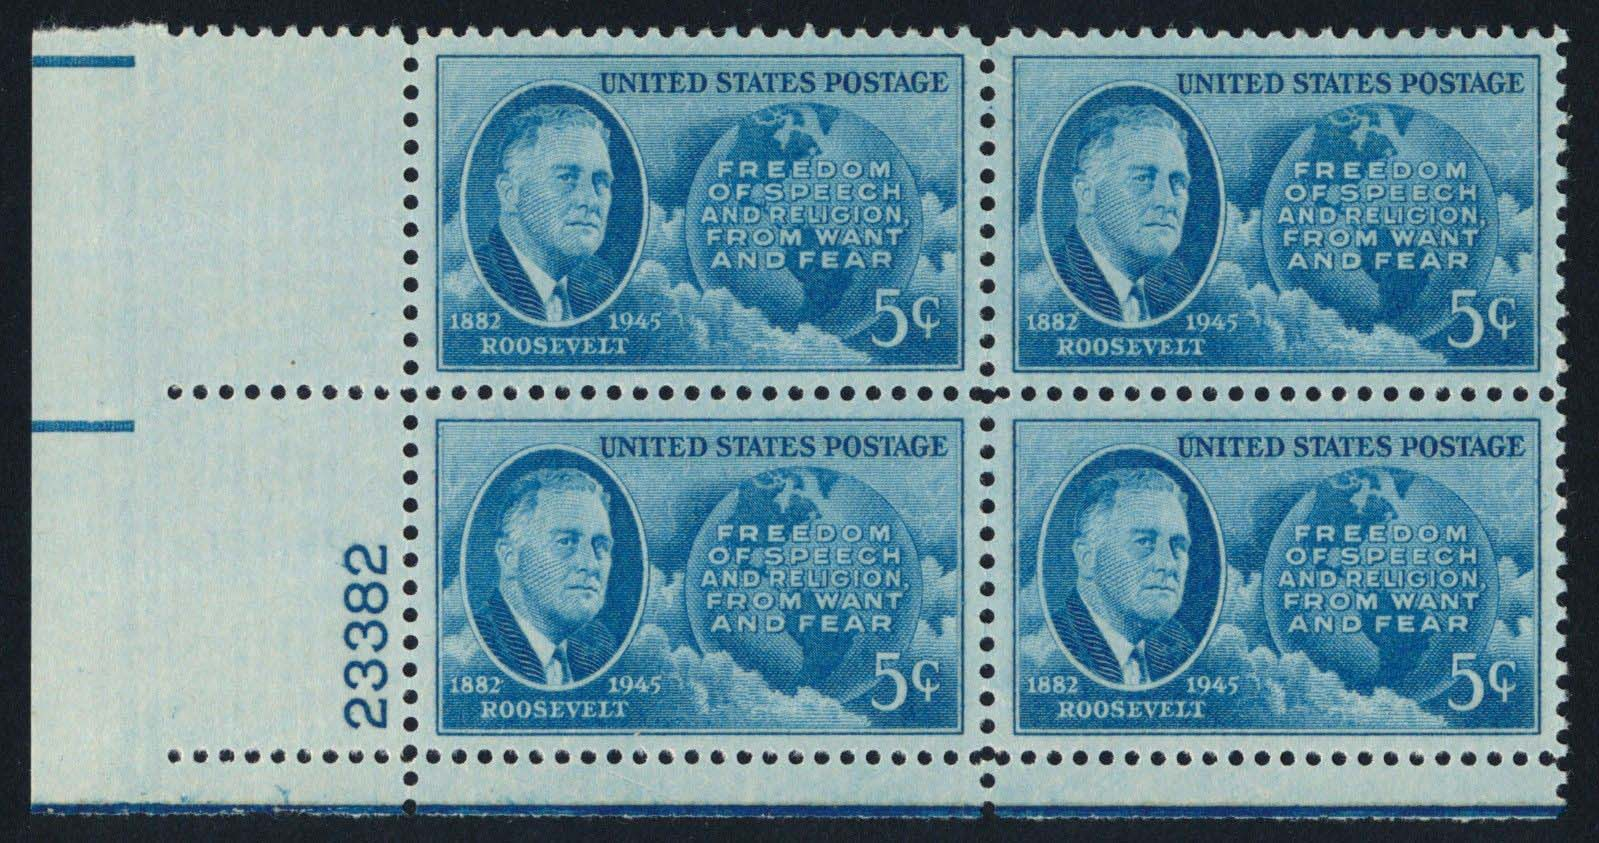 Scott 0933 Plate Block (5 cents)